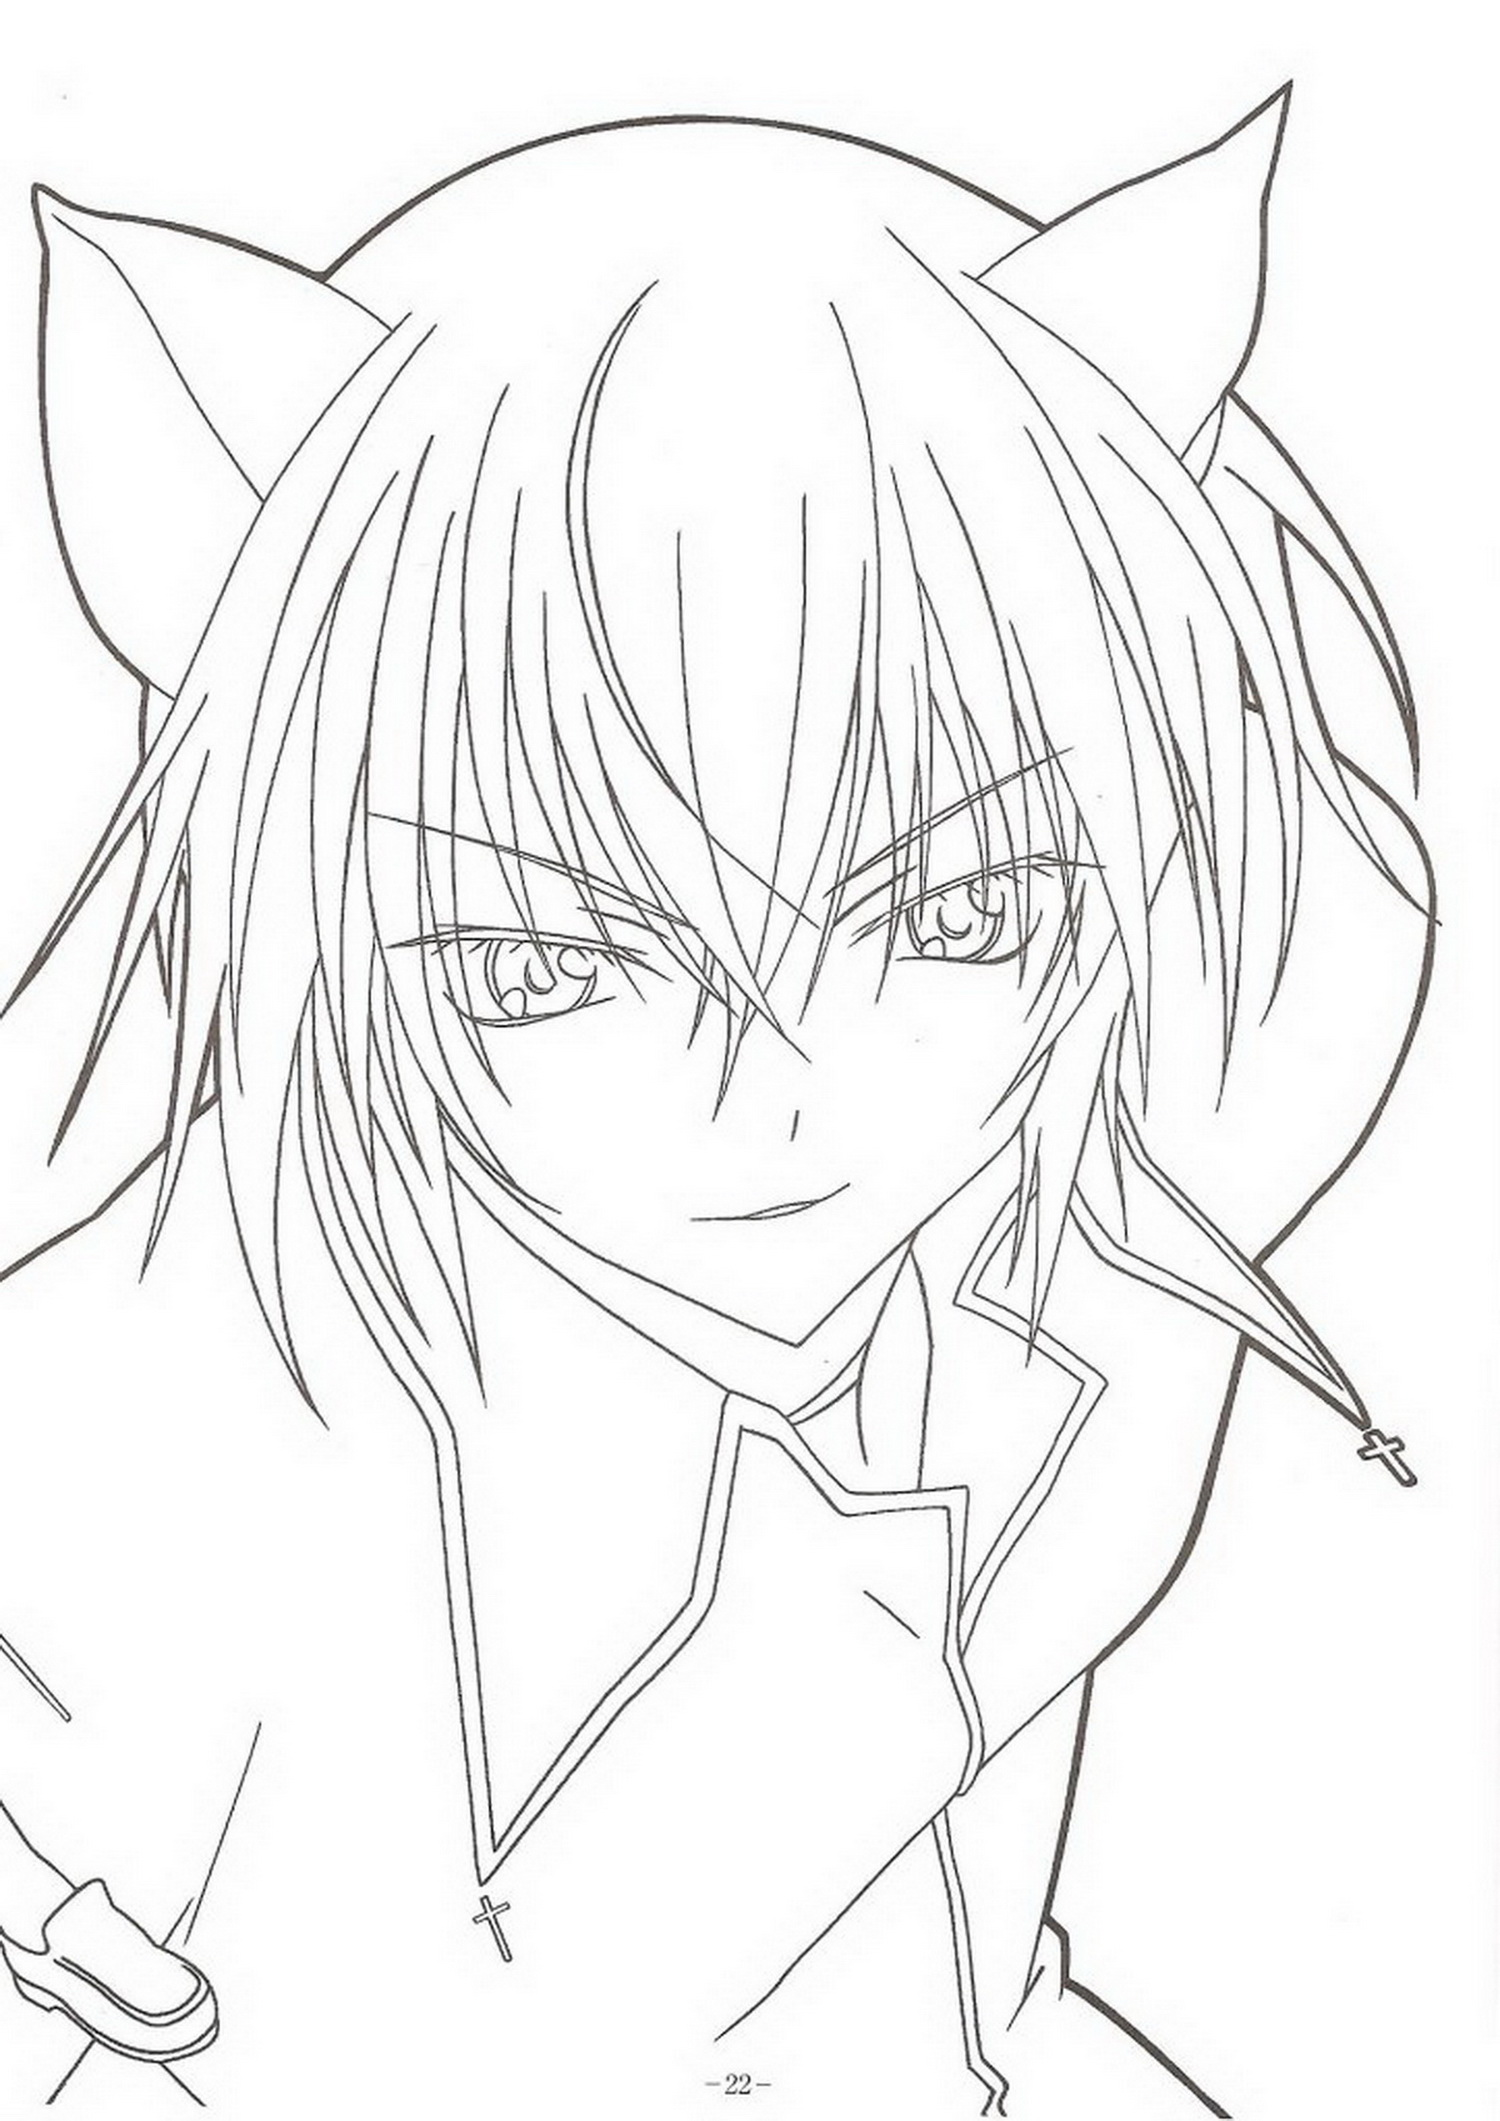 Anime sex coloring pages nude photos